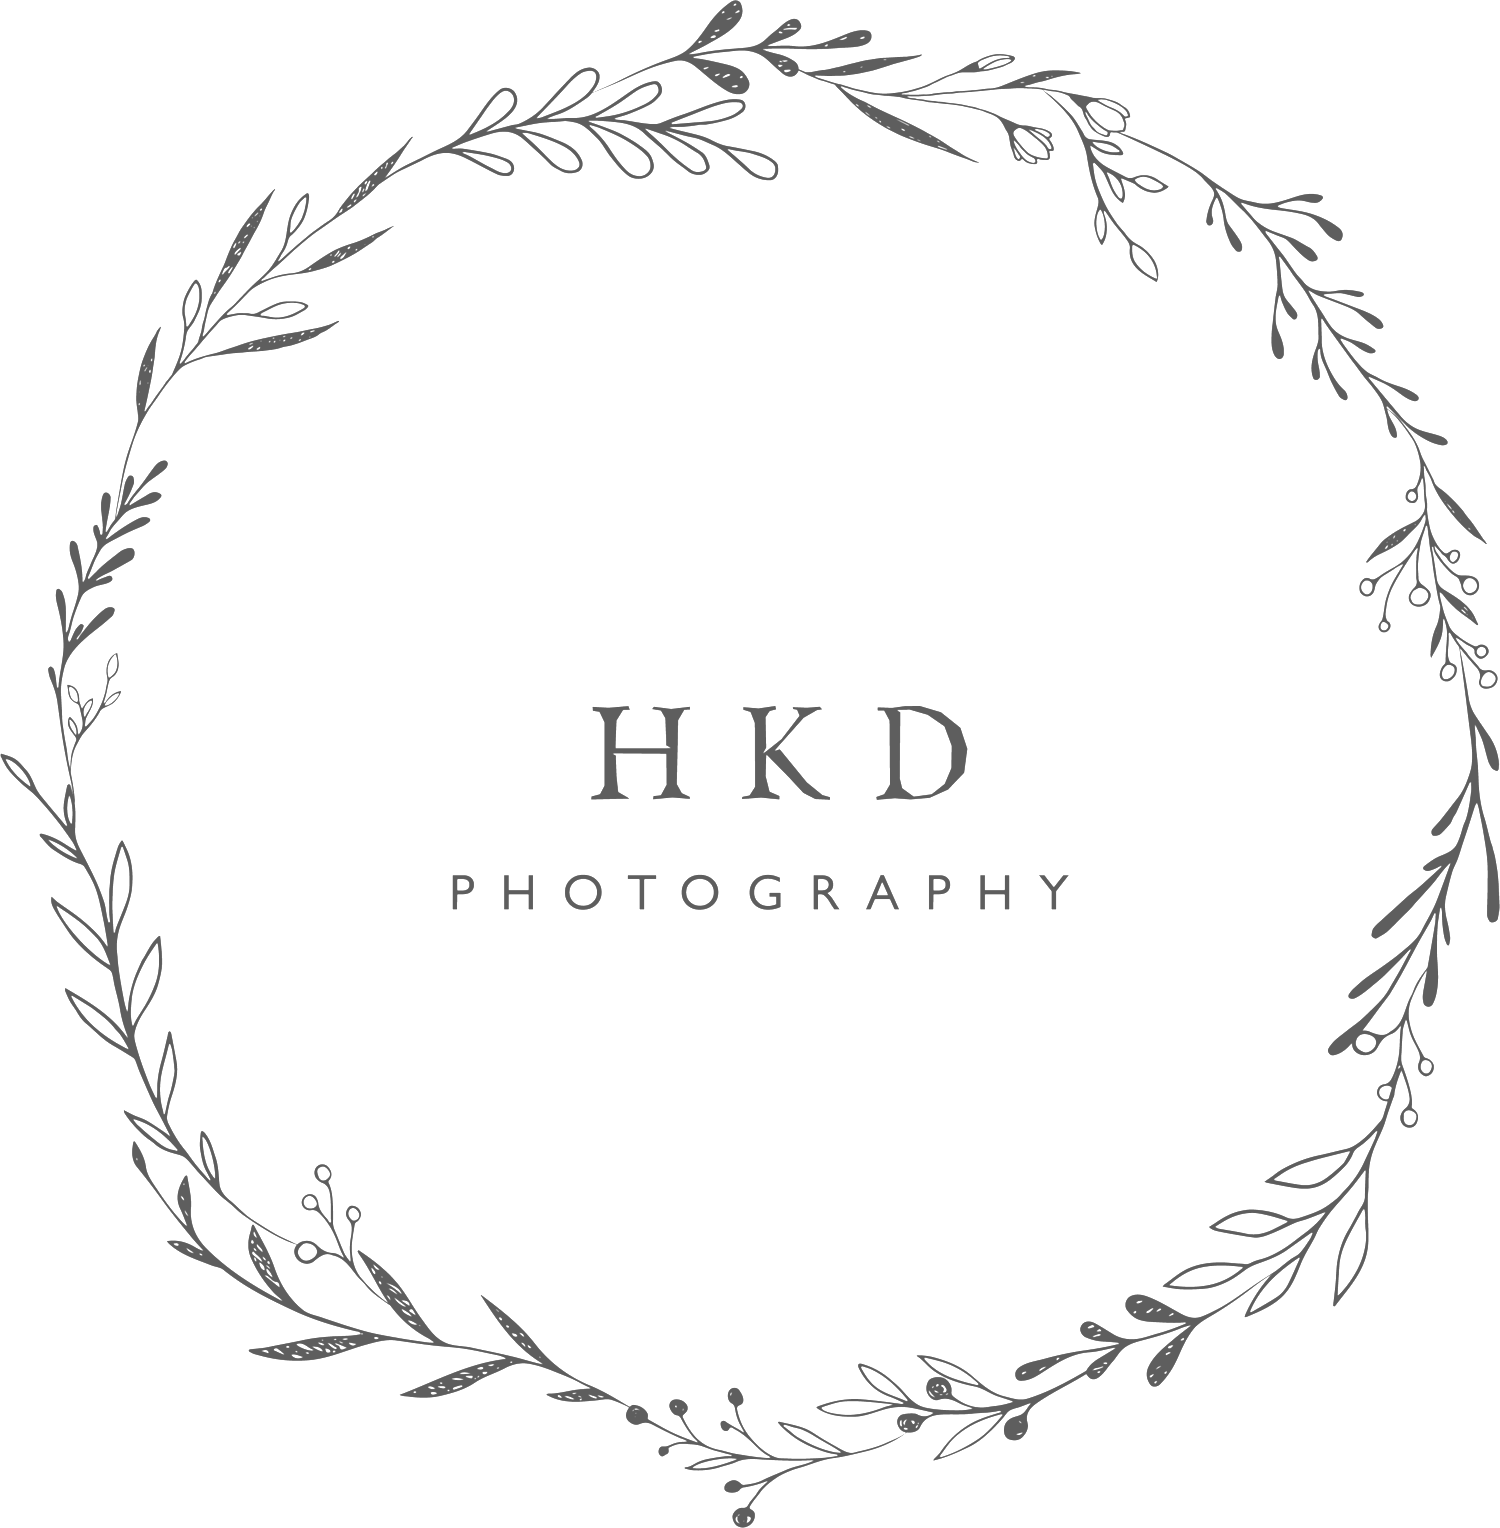 HKD Photography| Award Winning Studio| Glasgow| Stirling| Family Photographer